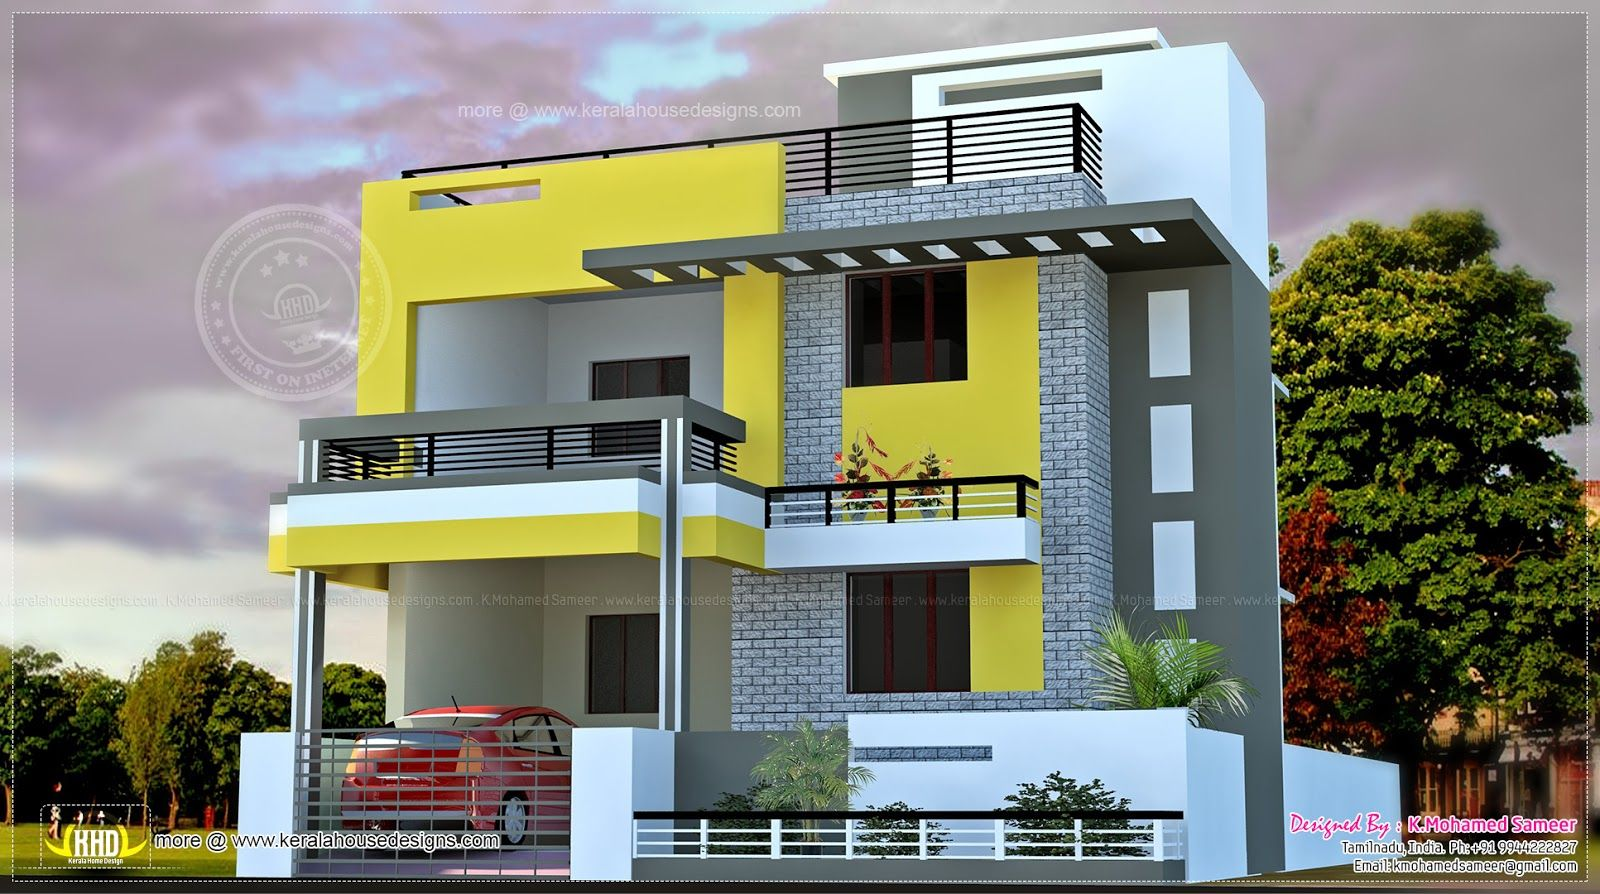 ultimate house designs with house plans featuring indian architects like u pinterest house design house plans and exterior houses